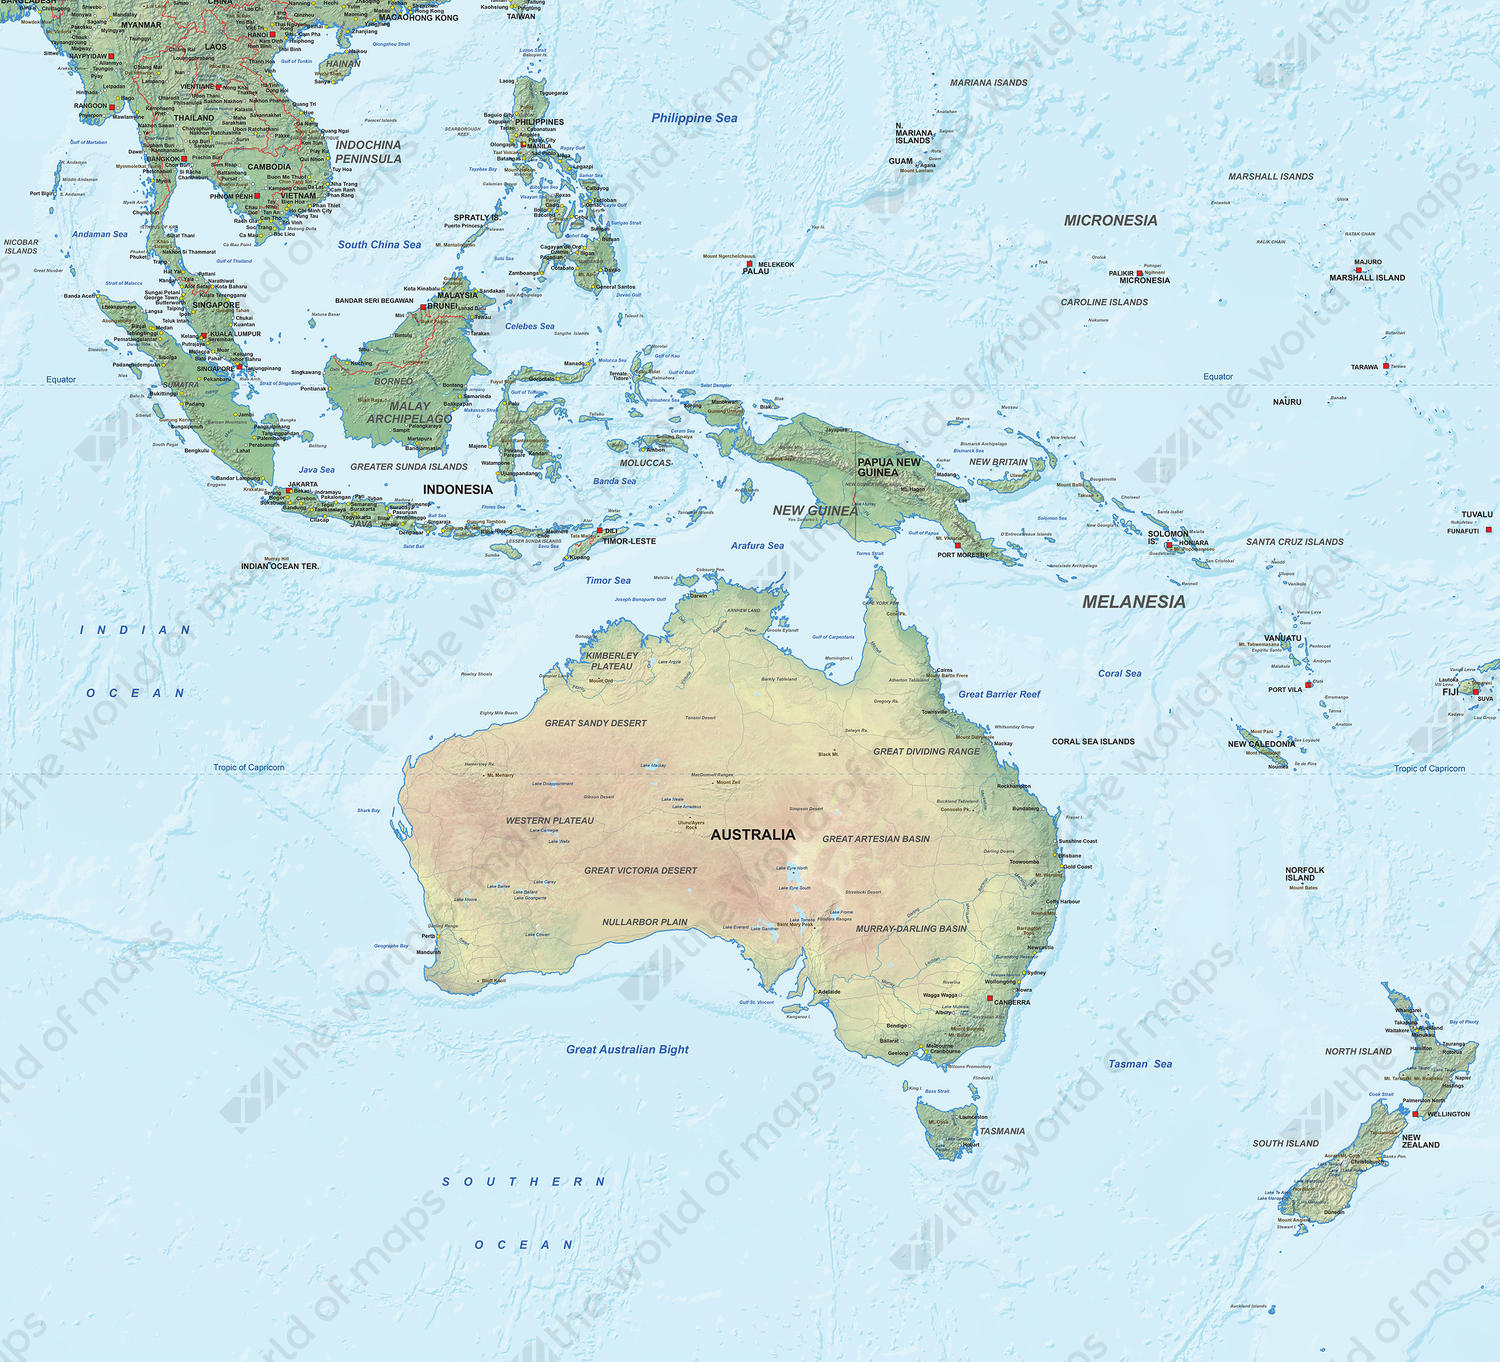 Digital map Oceania physical